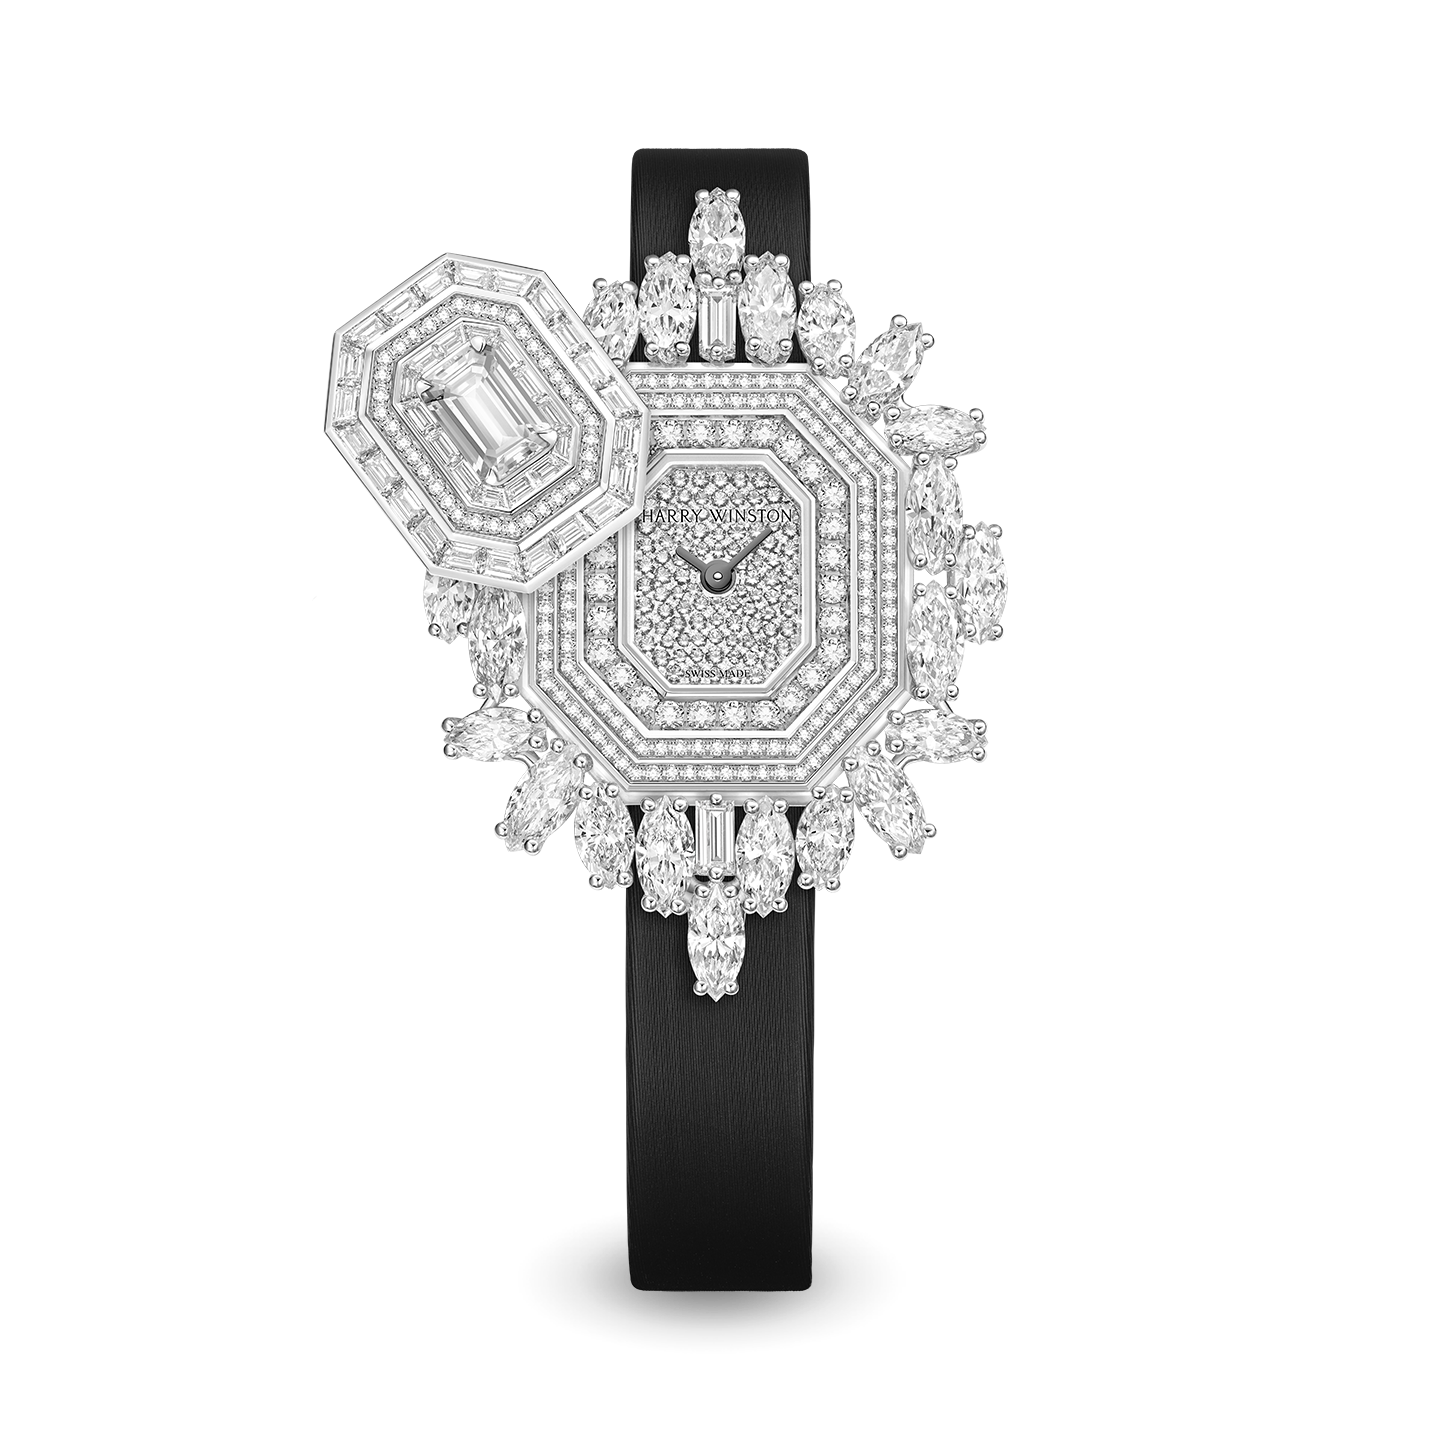 Ultimate Emerald Signature by Harry Winston, product image 1